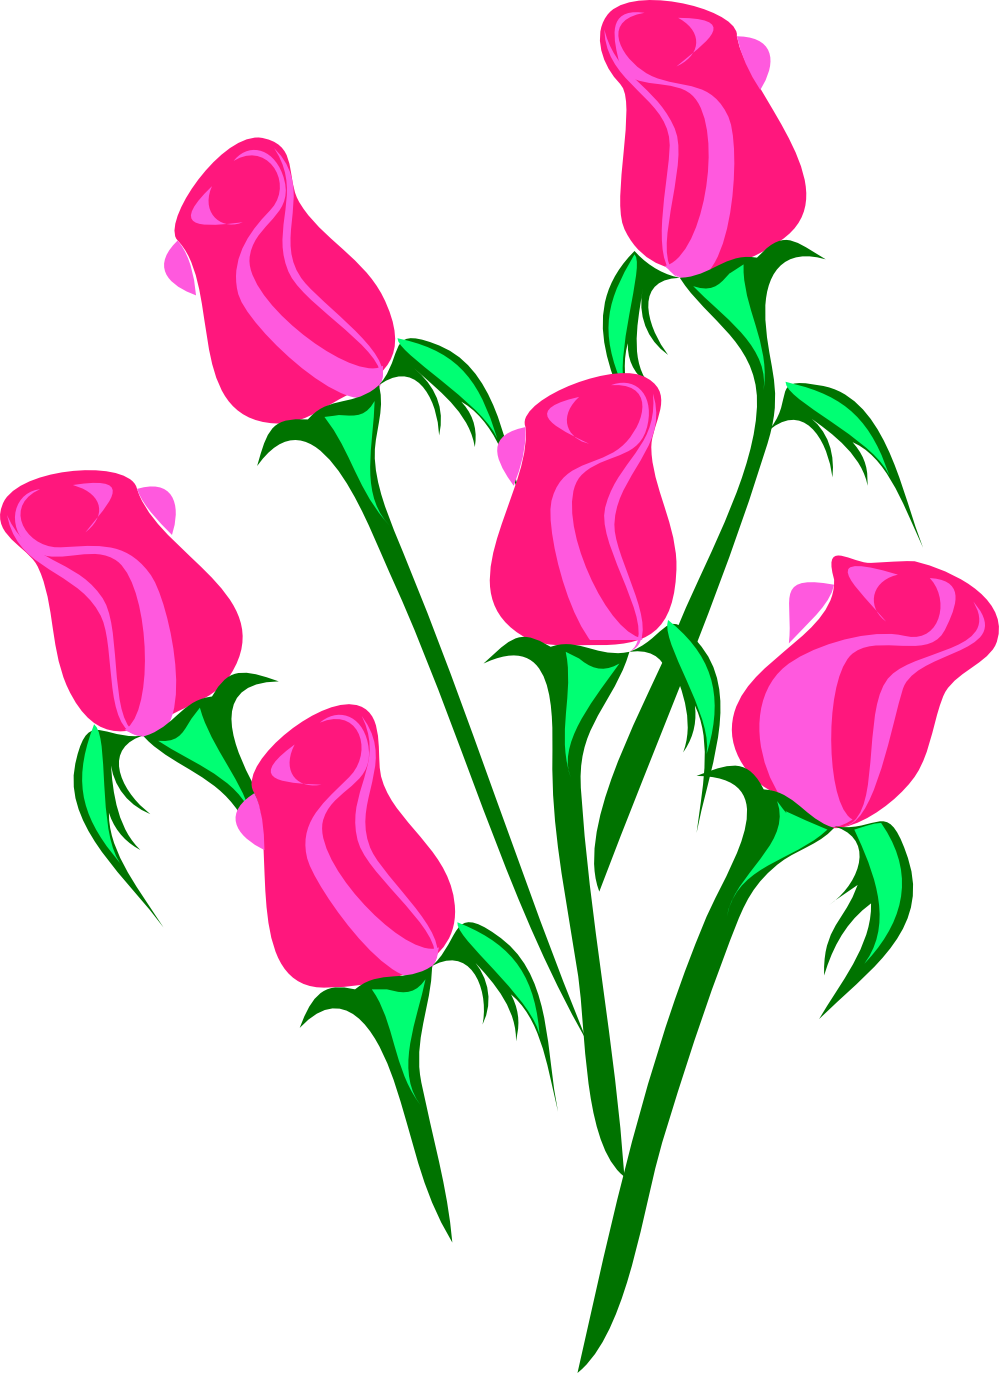 Rose flower clipart png jpg royalty free stock Flower Rose.png - ClipArt Best jpg royalty free stock